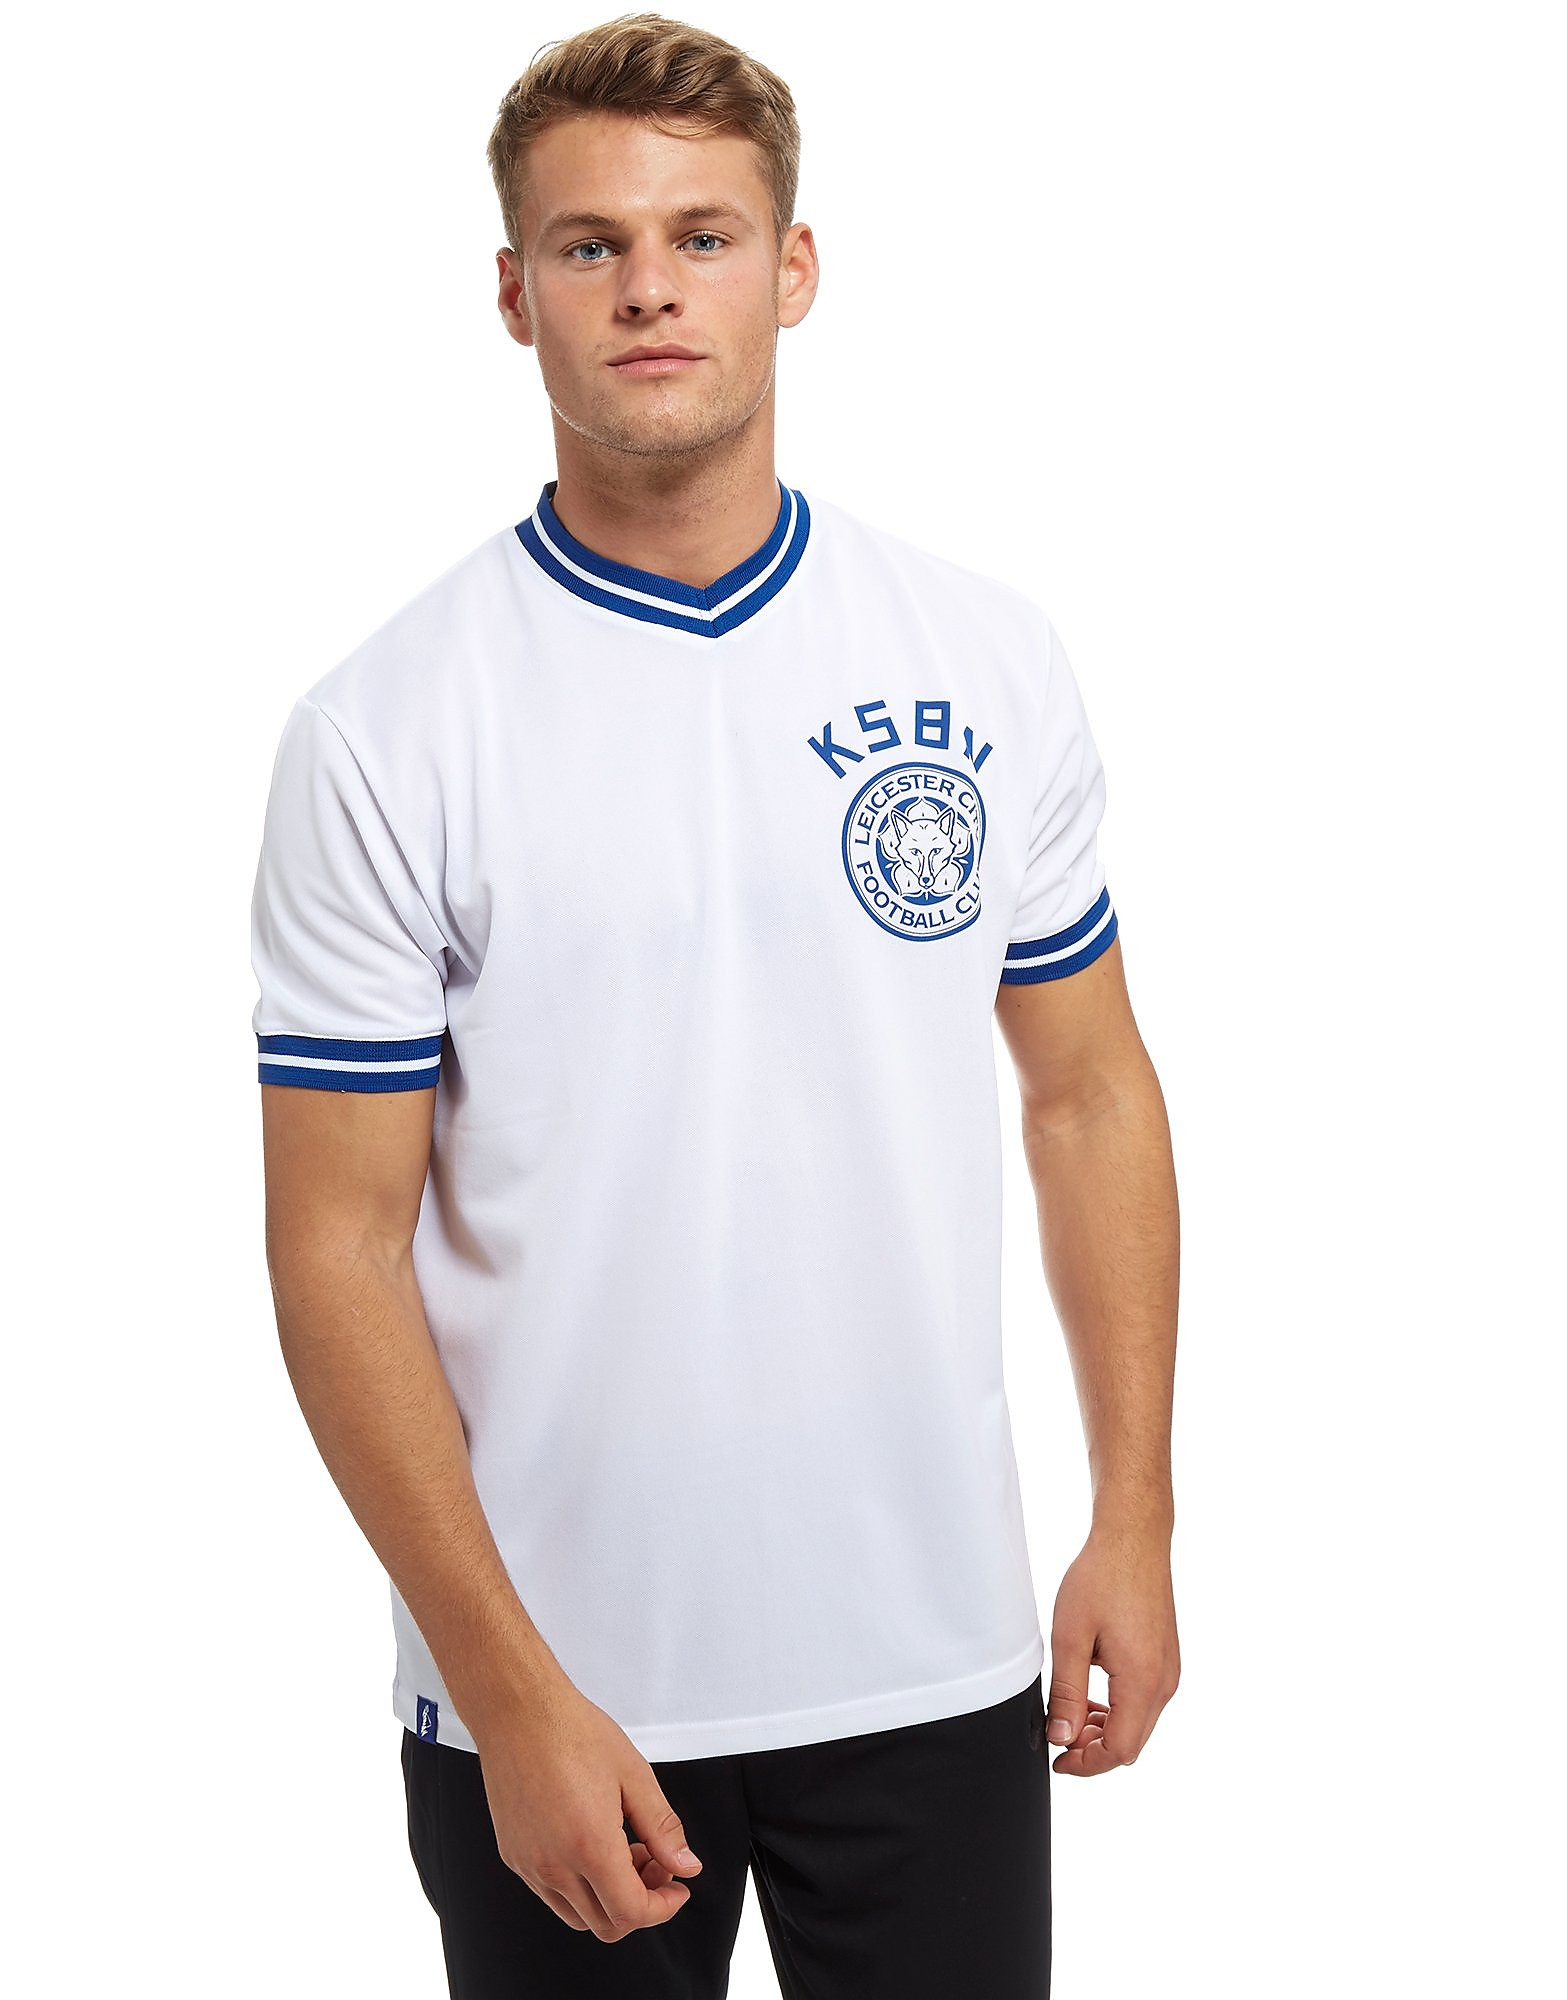 Official Team Official Leicester City Kasabian T-Shirt